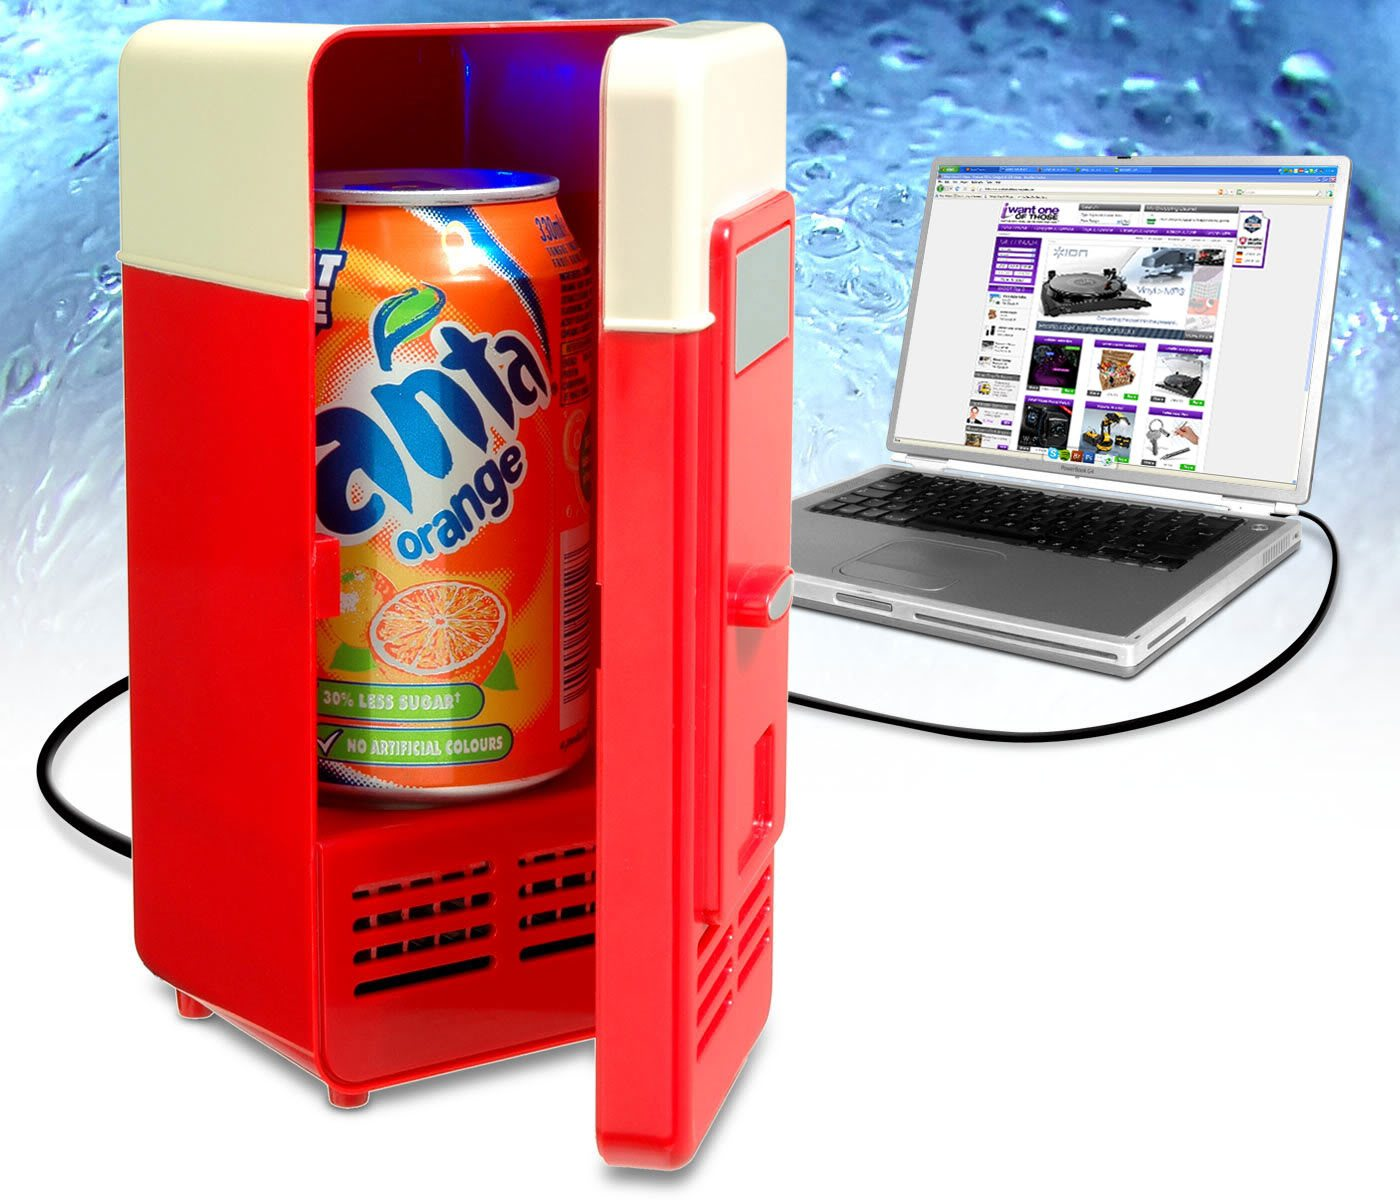 http://www.ldgadgets.com/mini-usb-fridge-cooler-warmer-gadget-beverage-drink-cans-refrigerator/